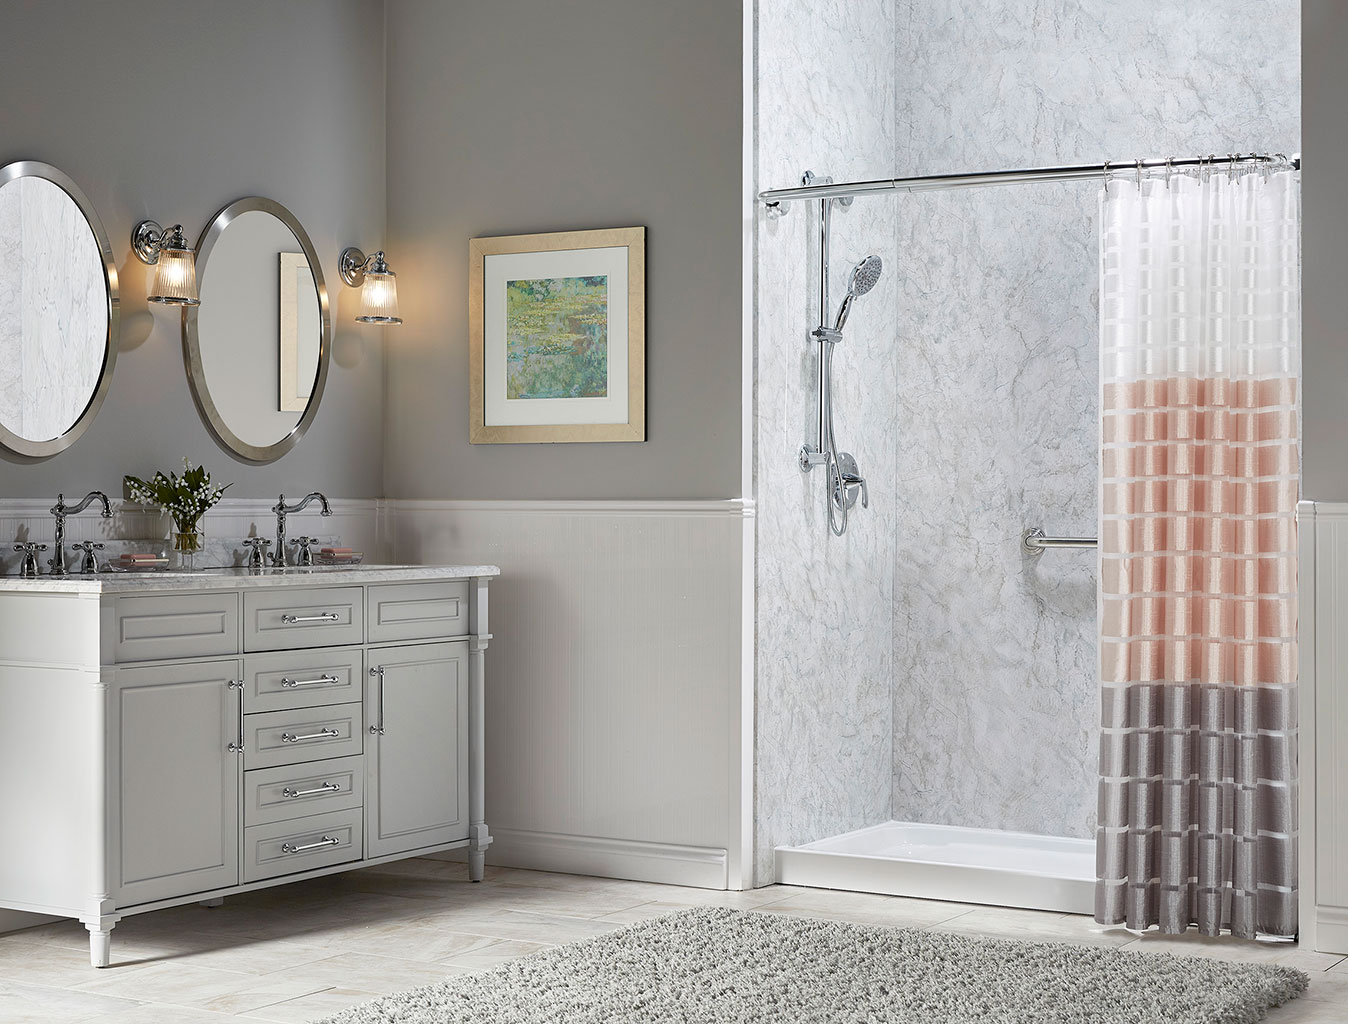 install a lowmaintenance shower that's easy to clean